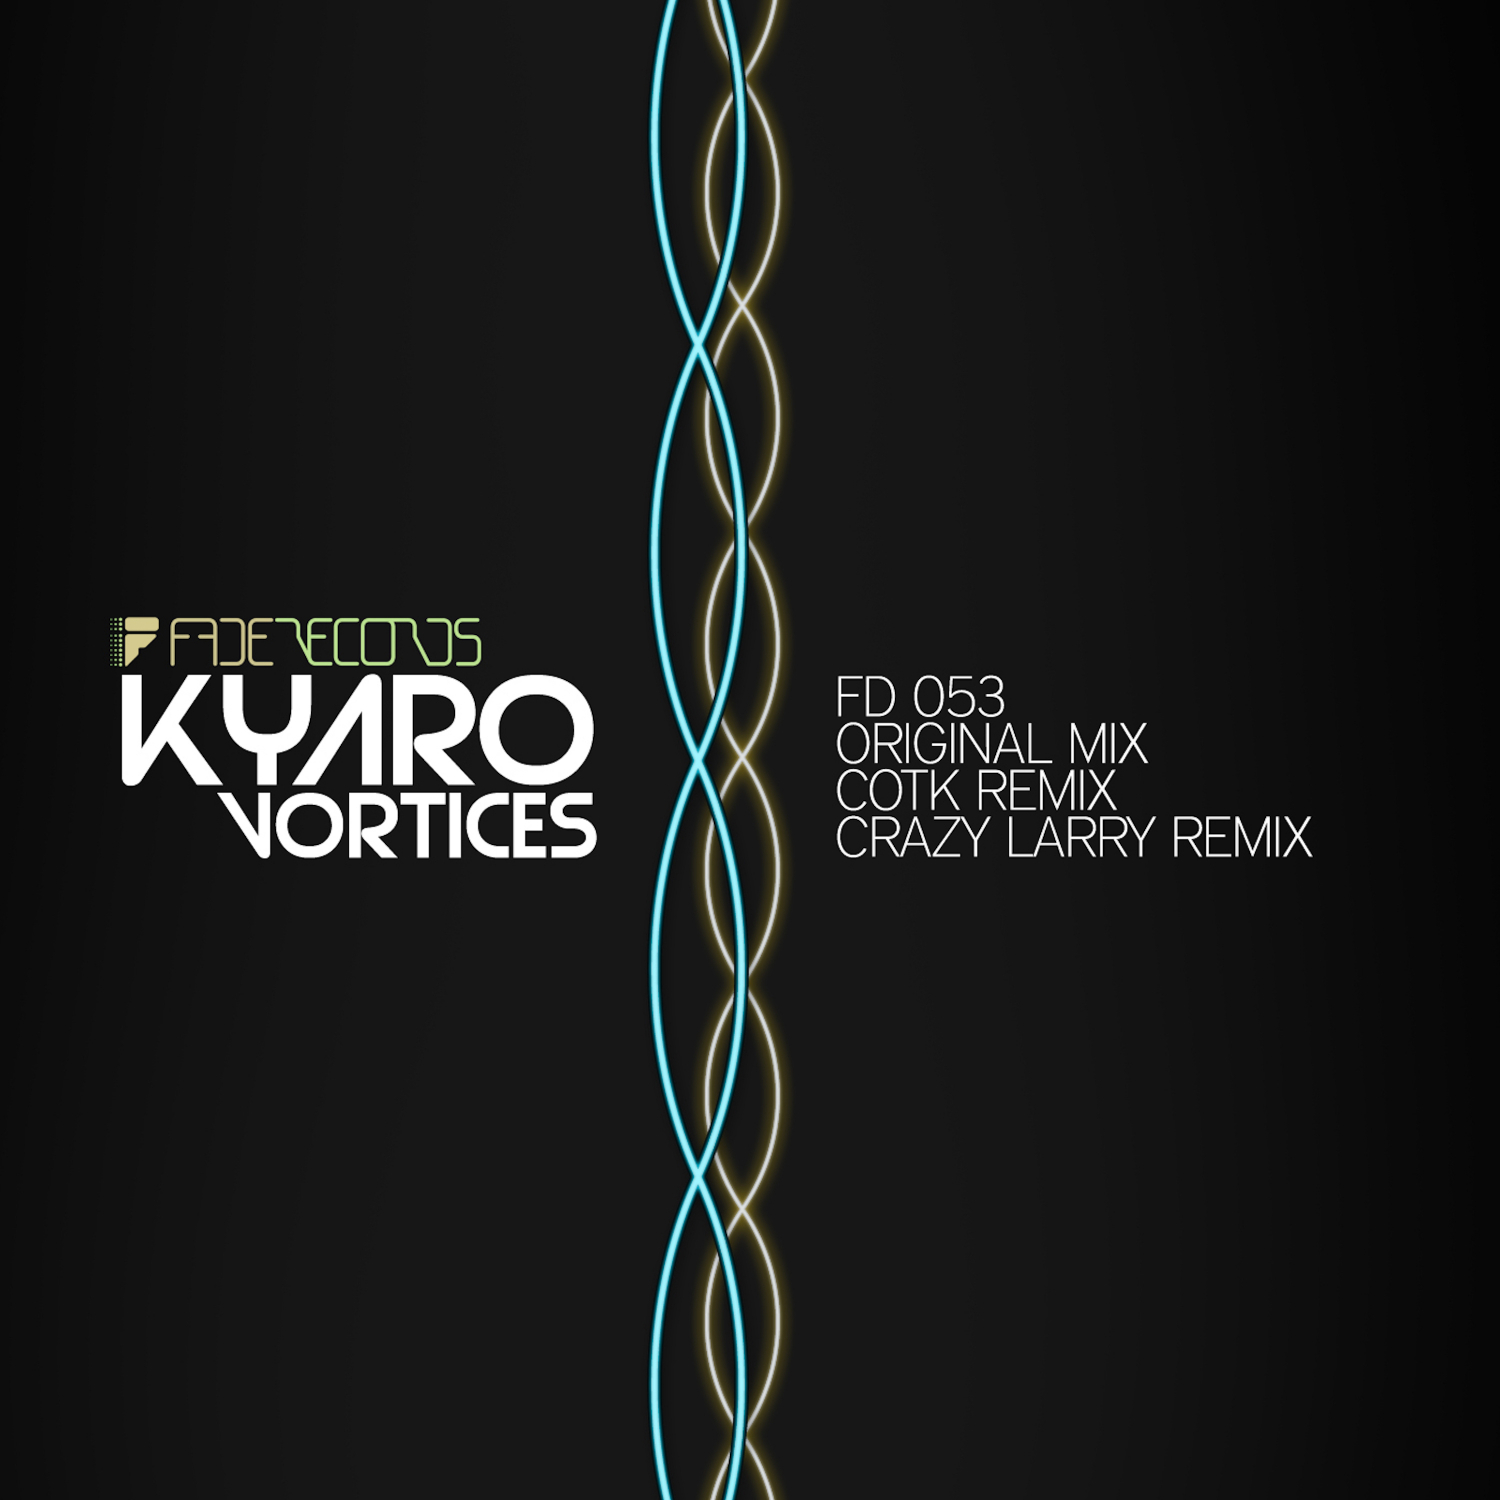 Kyaro  - Vortices (Crazy Larry Remix)